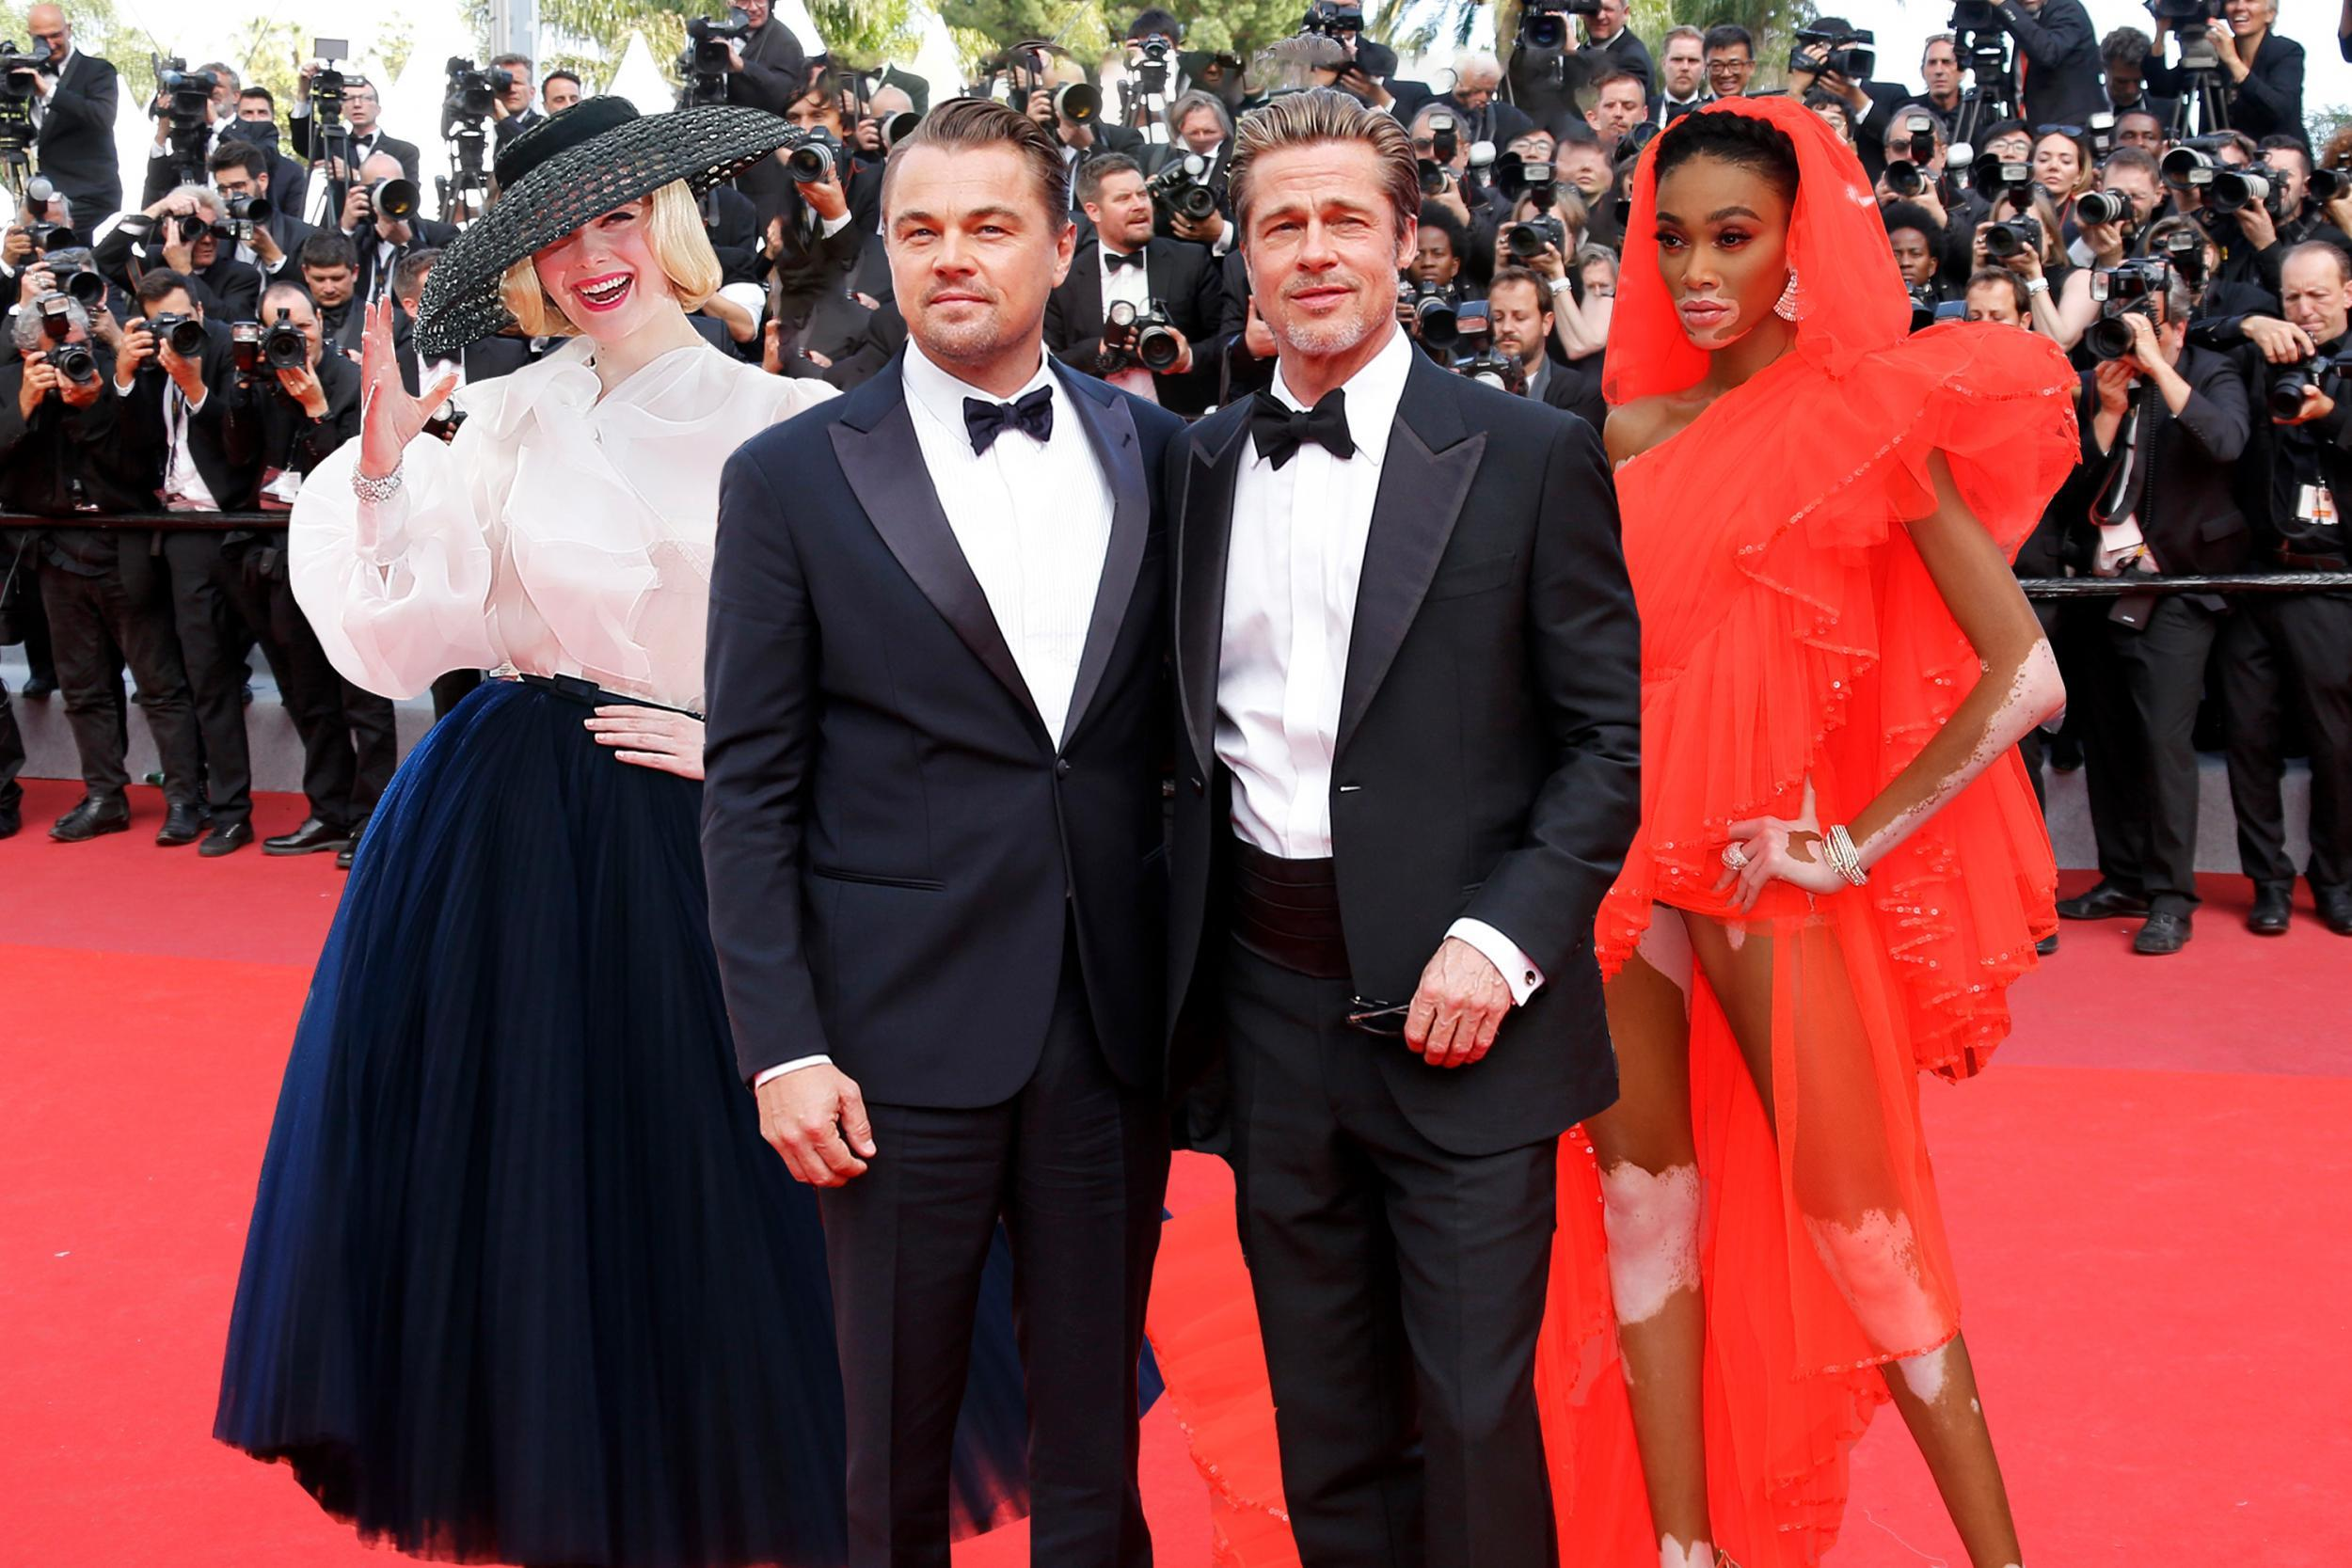 Cinema for Peace honouree Leonardo DiCaprio used the global attention for his Tarantino film with Brad Pitt to premiere the climate change film Ice on Fire.